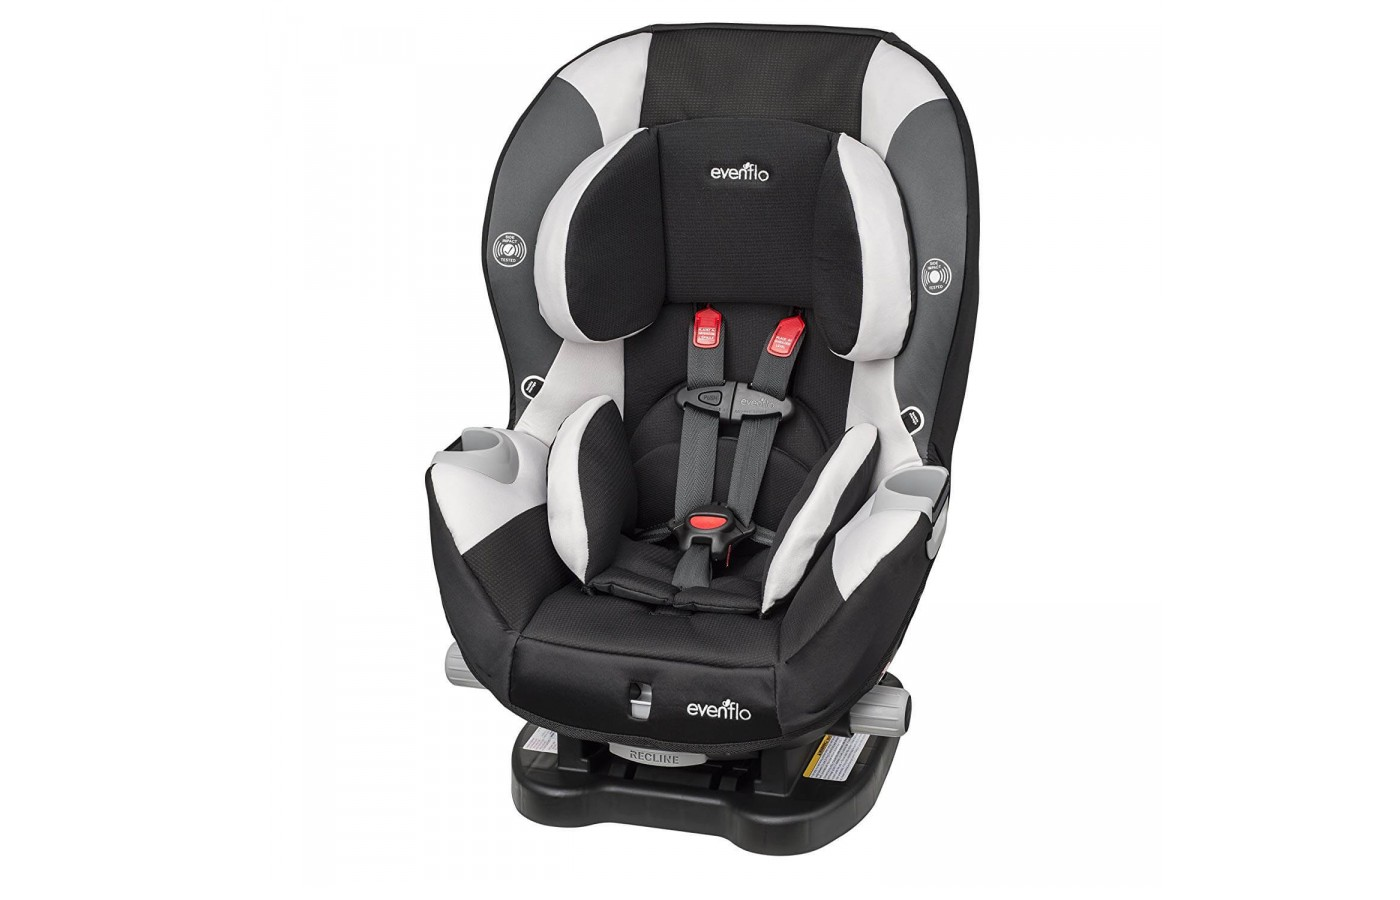 This car seat will ensure that your child stays safe